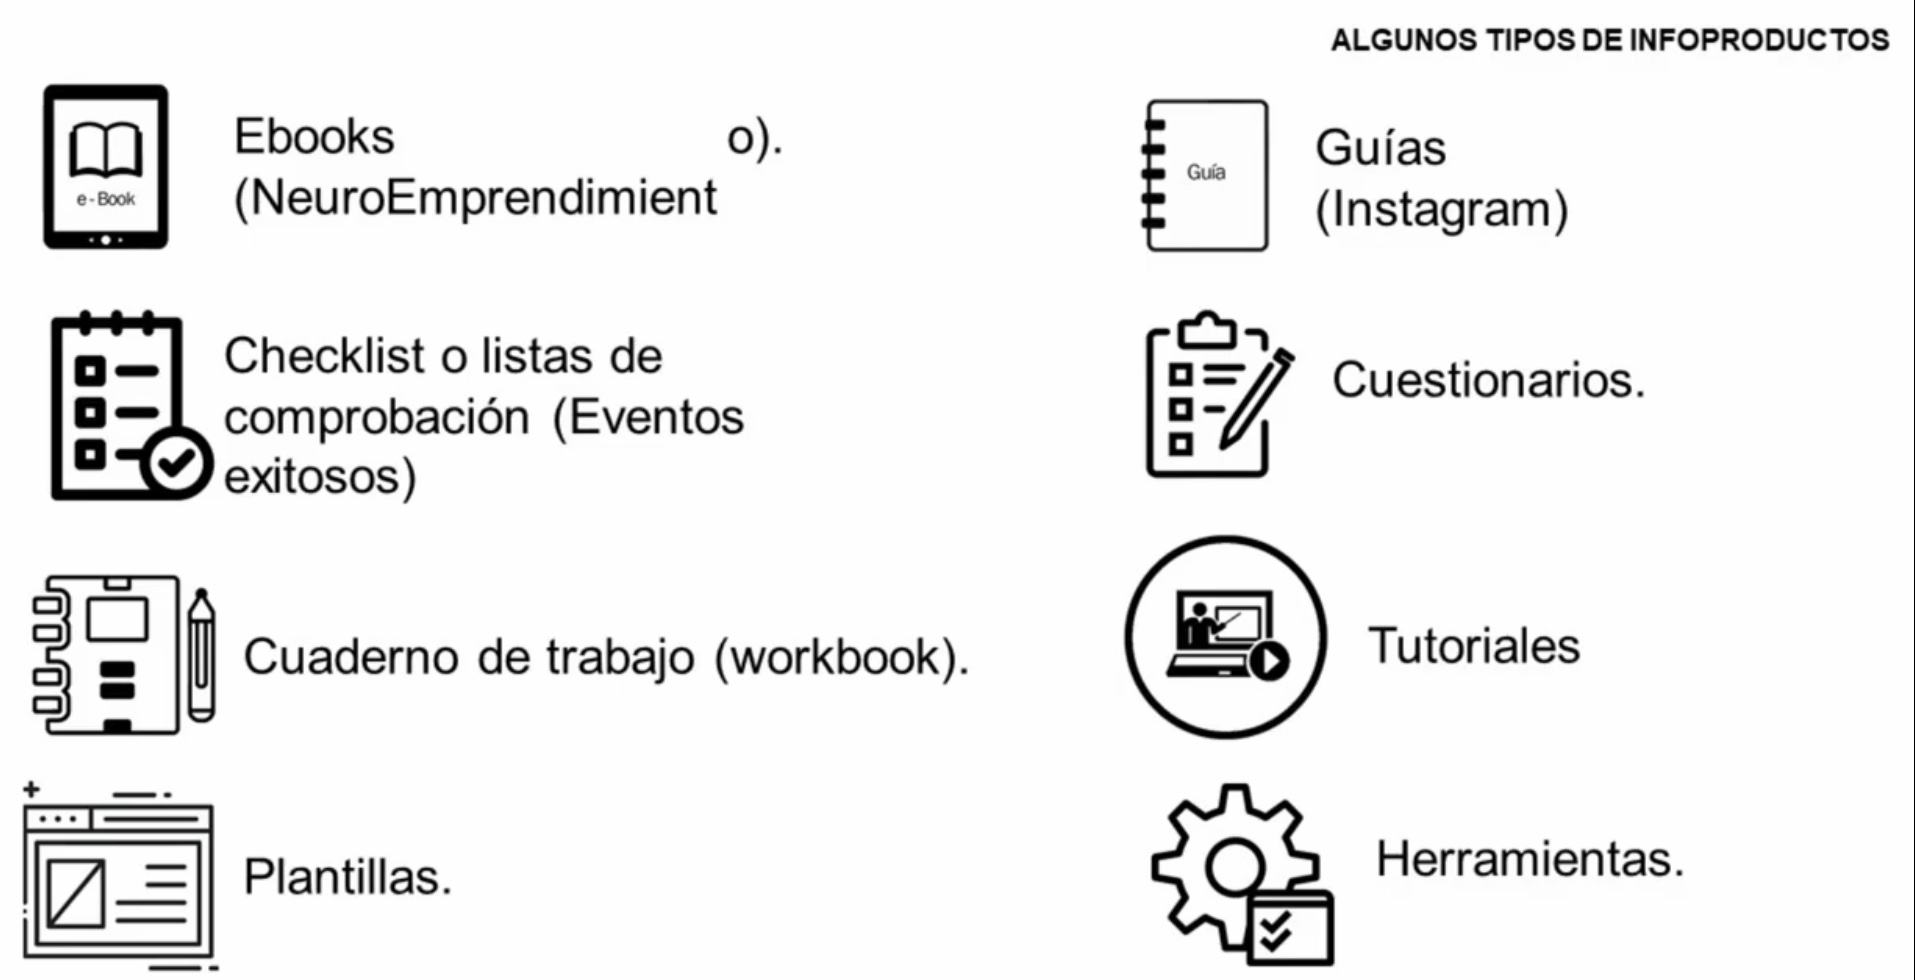 Infoproductos